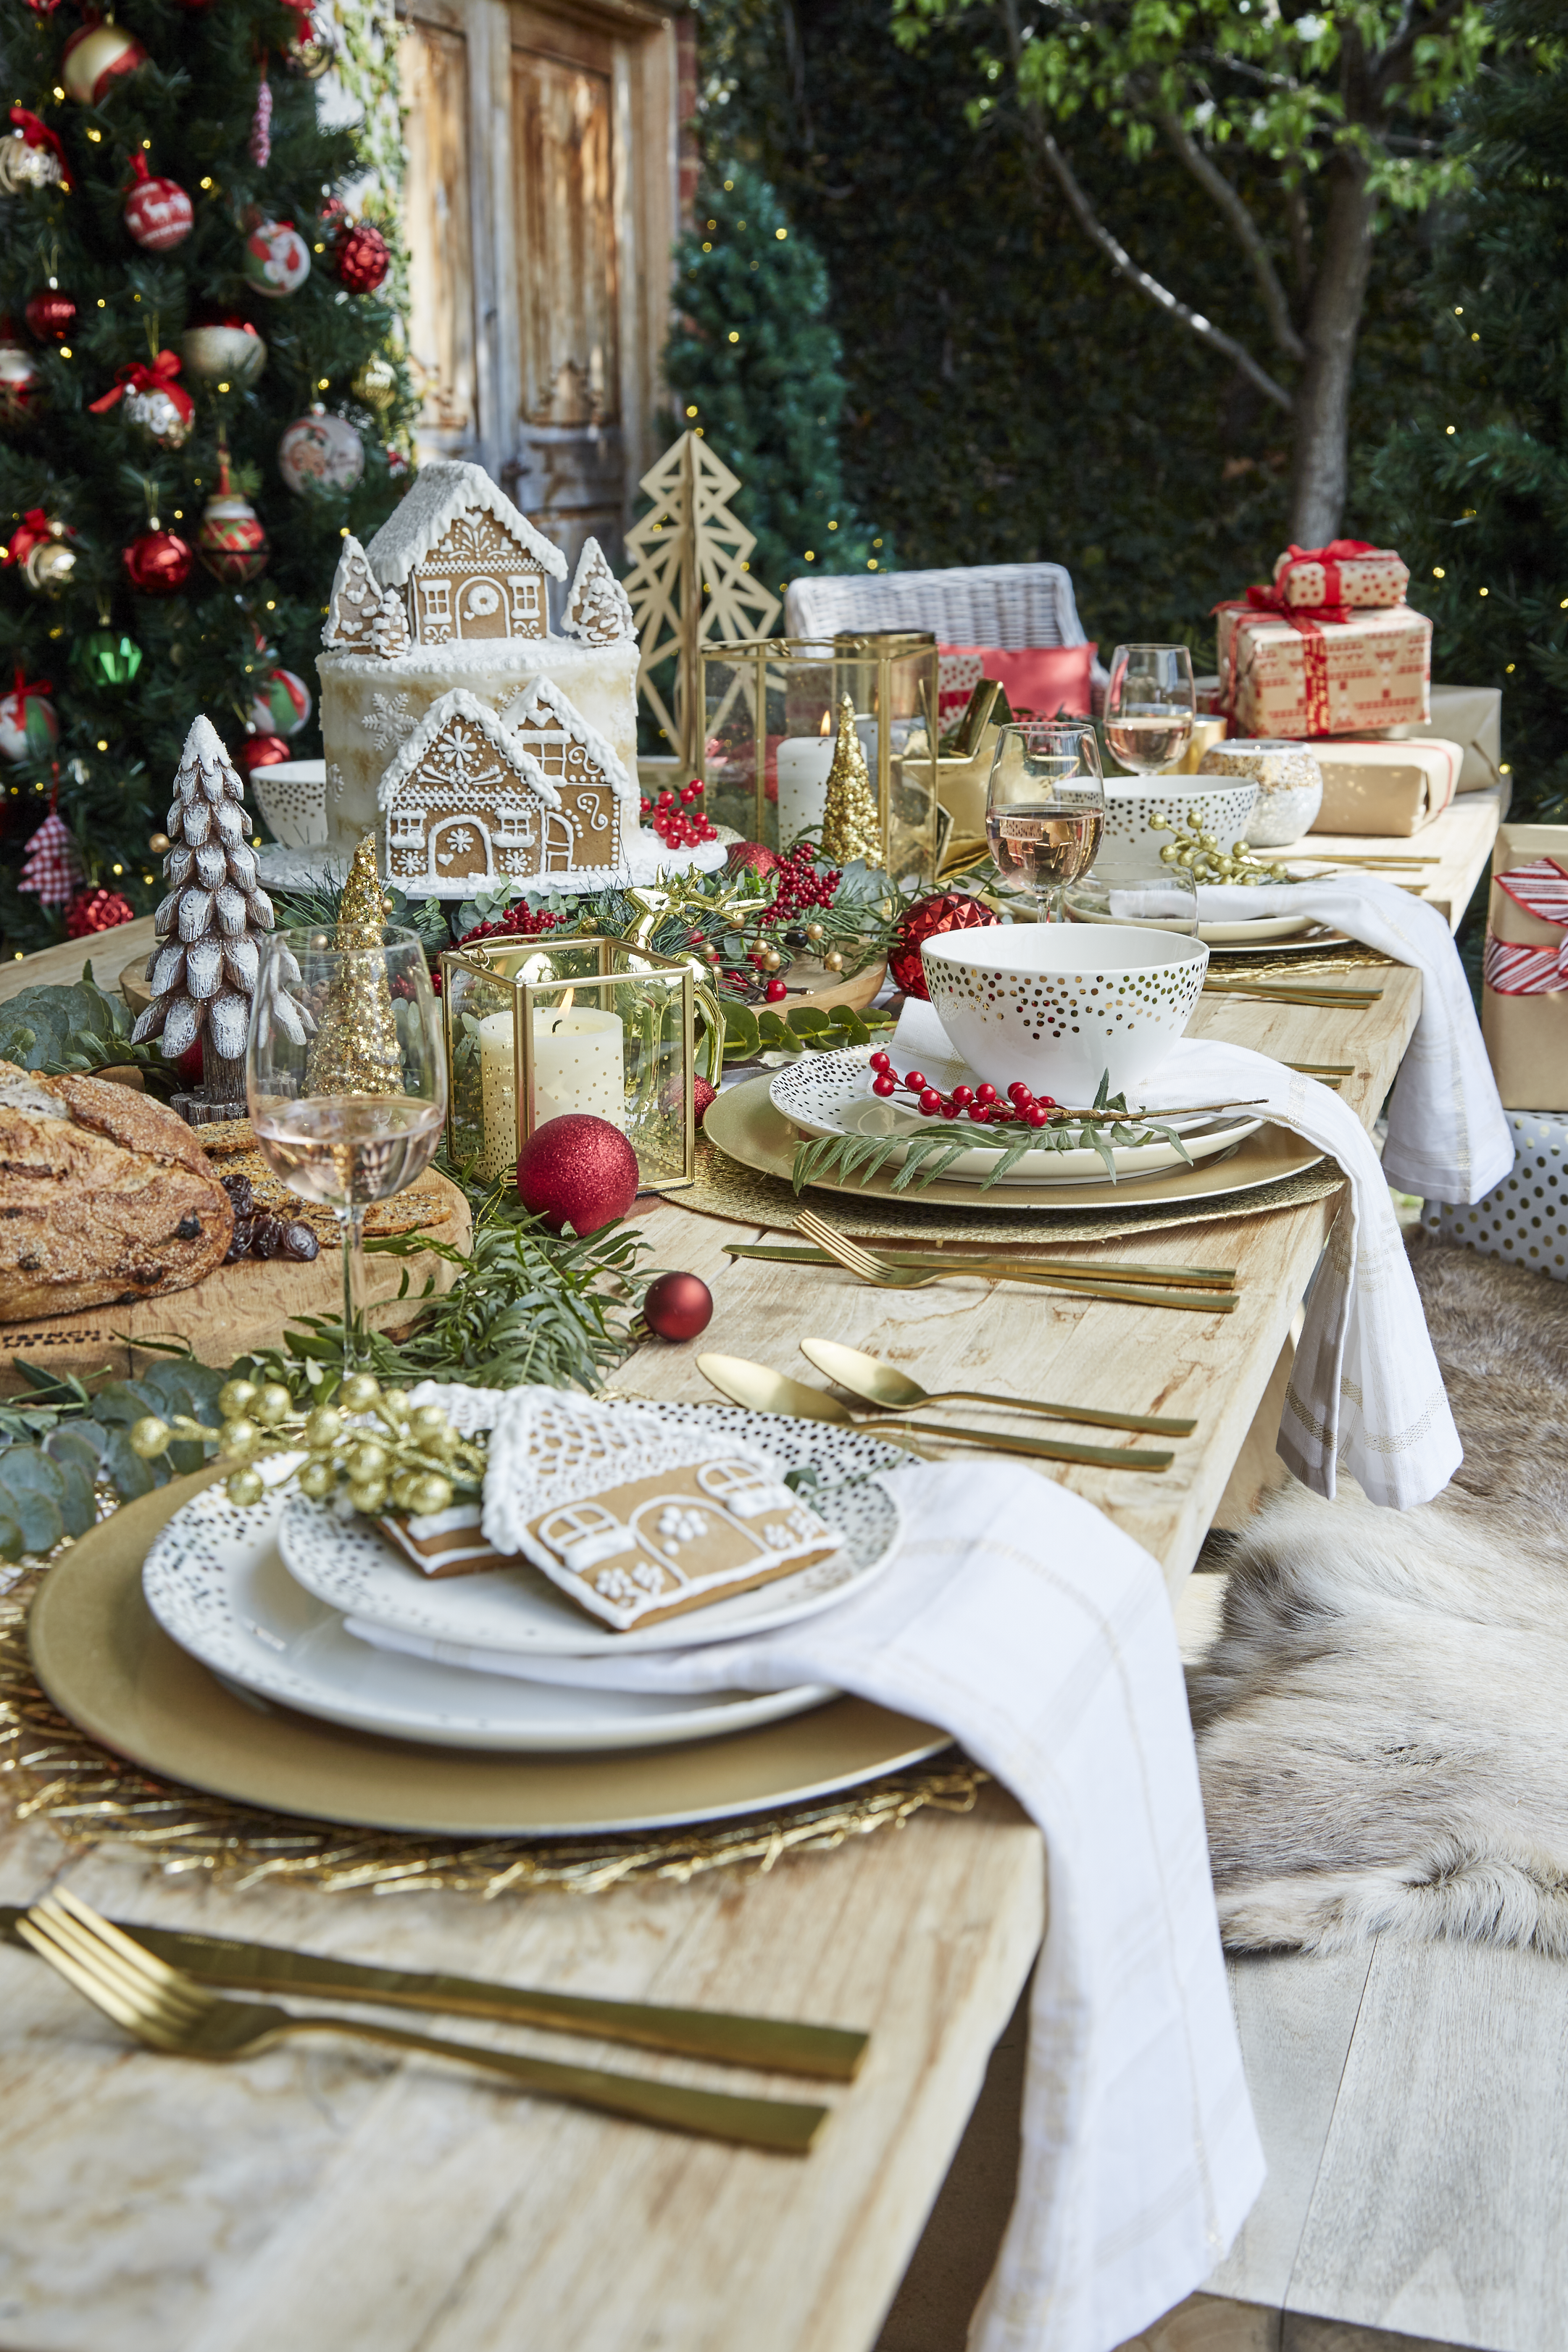 Mix Christmas Day With Summer Entertaining By Adding A Splash Of Gold To Your Wooden Tab Christmas Dining Table Holiday Dining Table Decor Holiday Dining Table